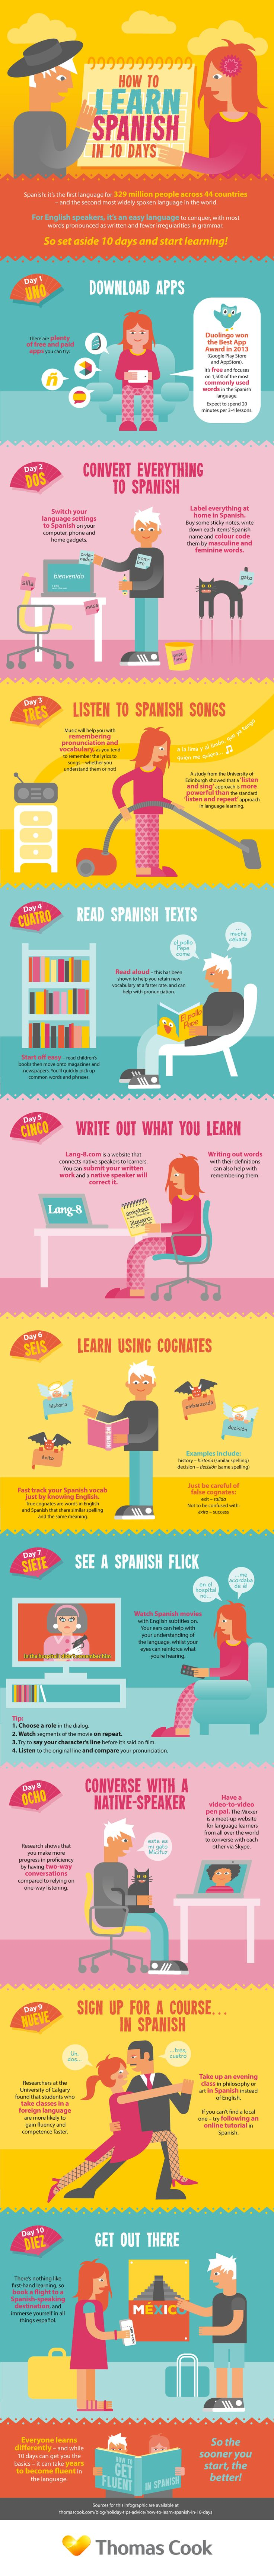 How to learn a foreign language in 10 - infographic from Thomas Cook-strategies to apply any learning.